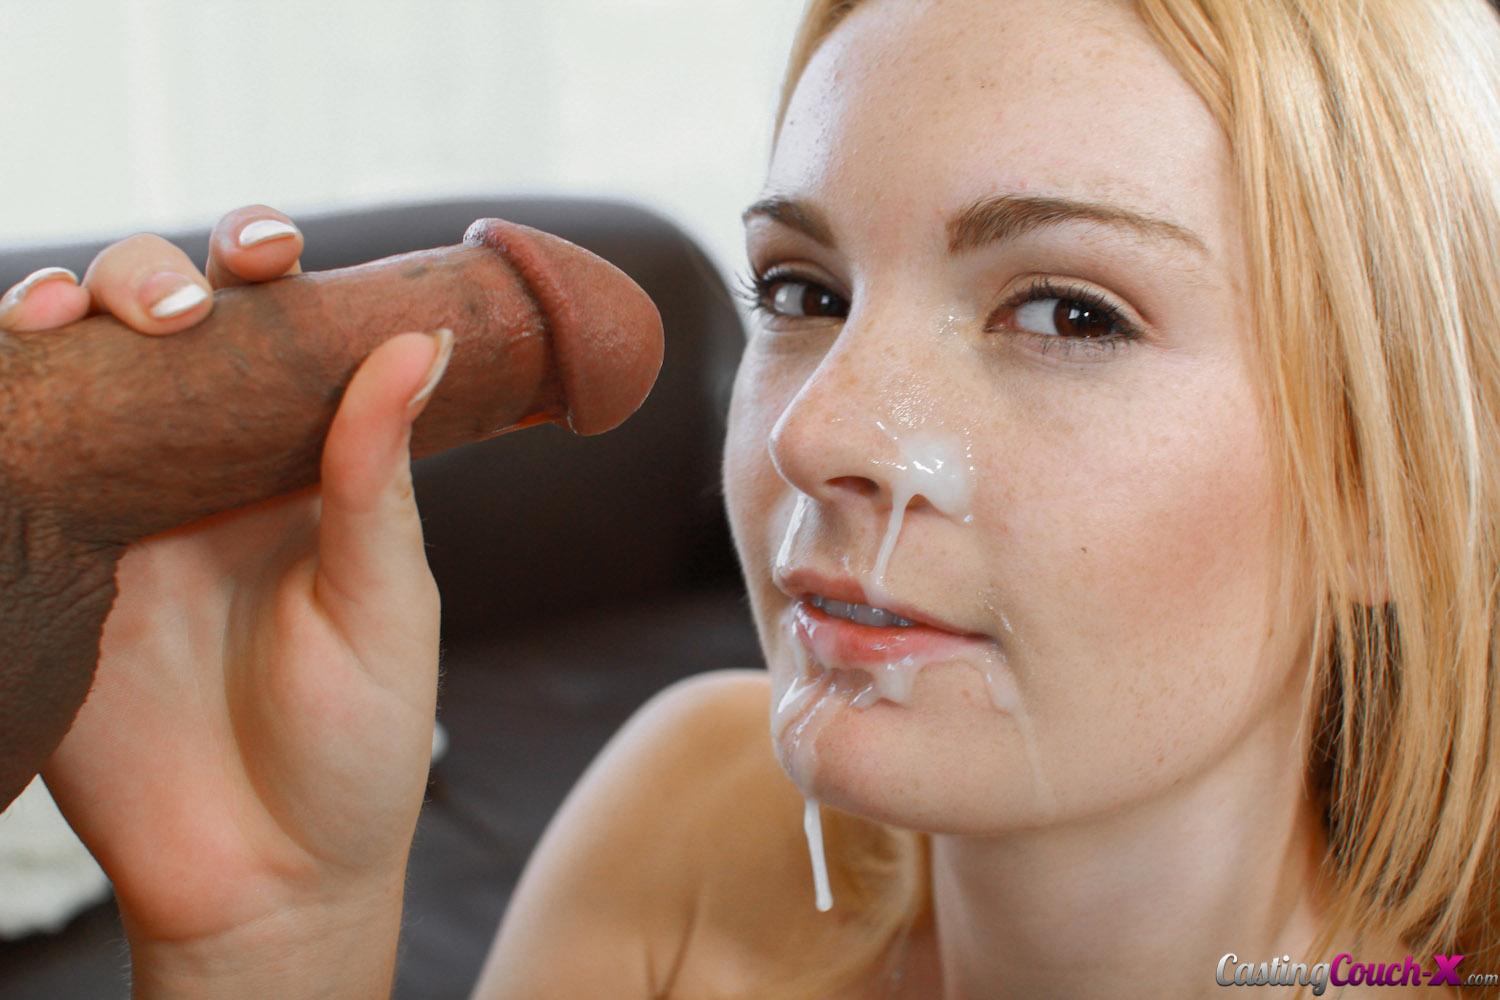 Hd castingcouchx kennedy leigh begs for her first facial - 2 part 5